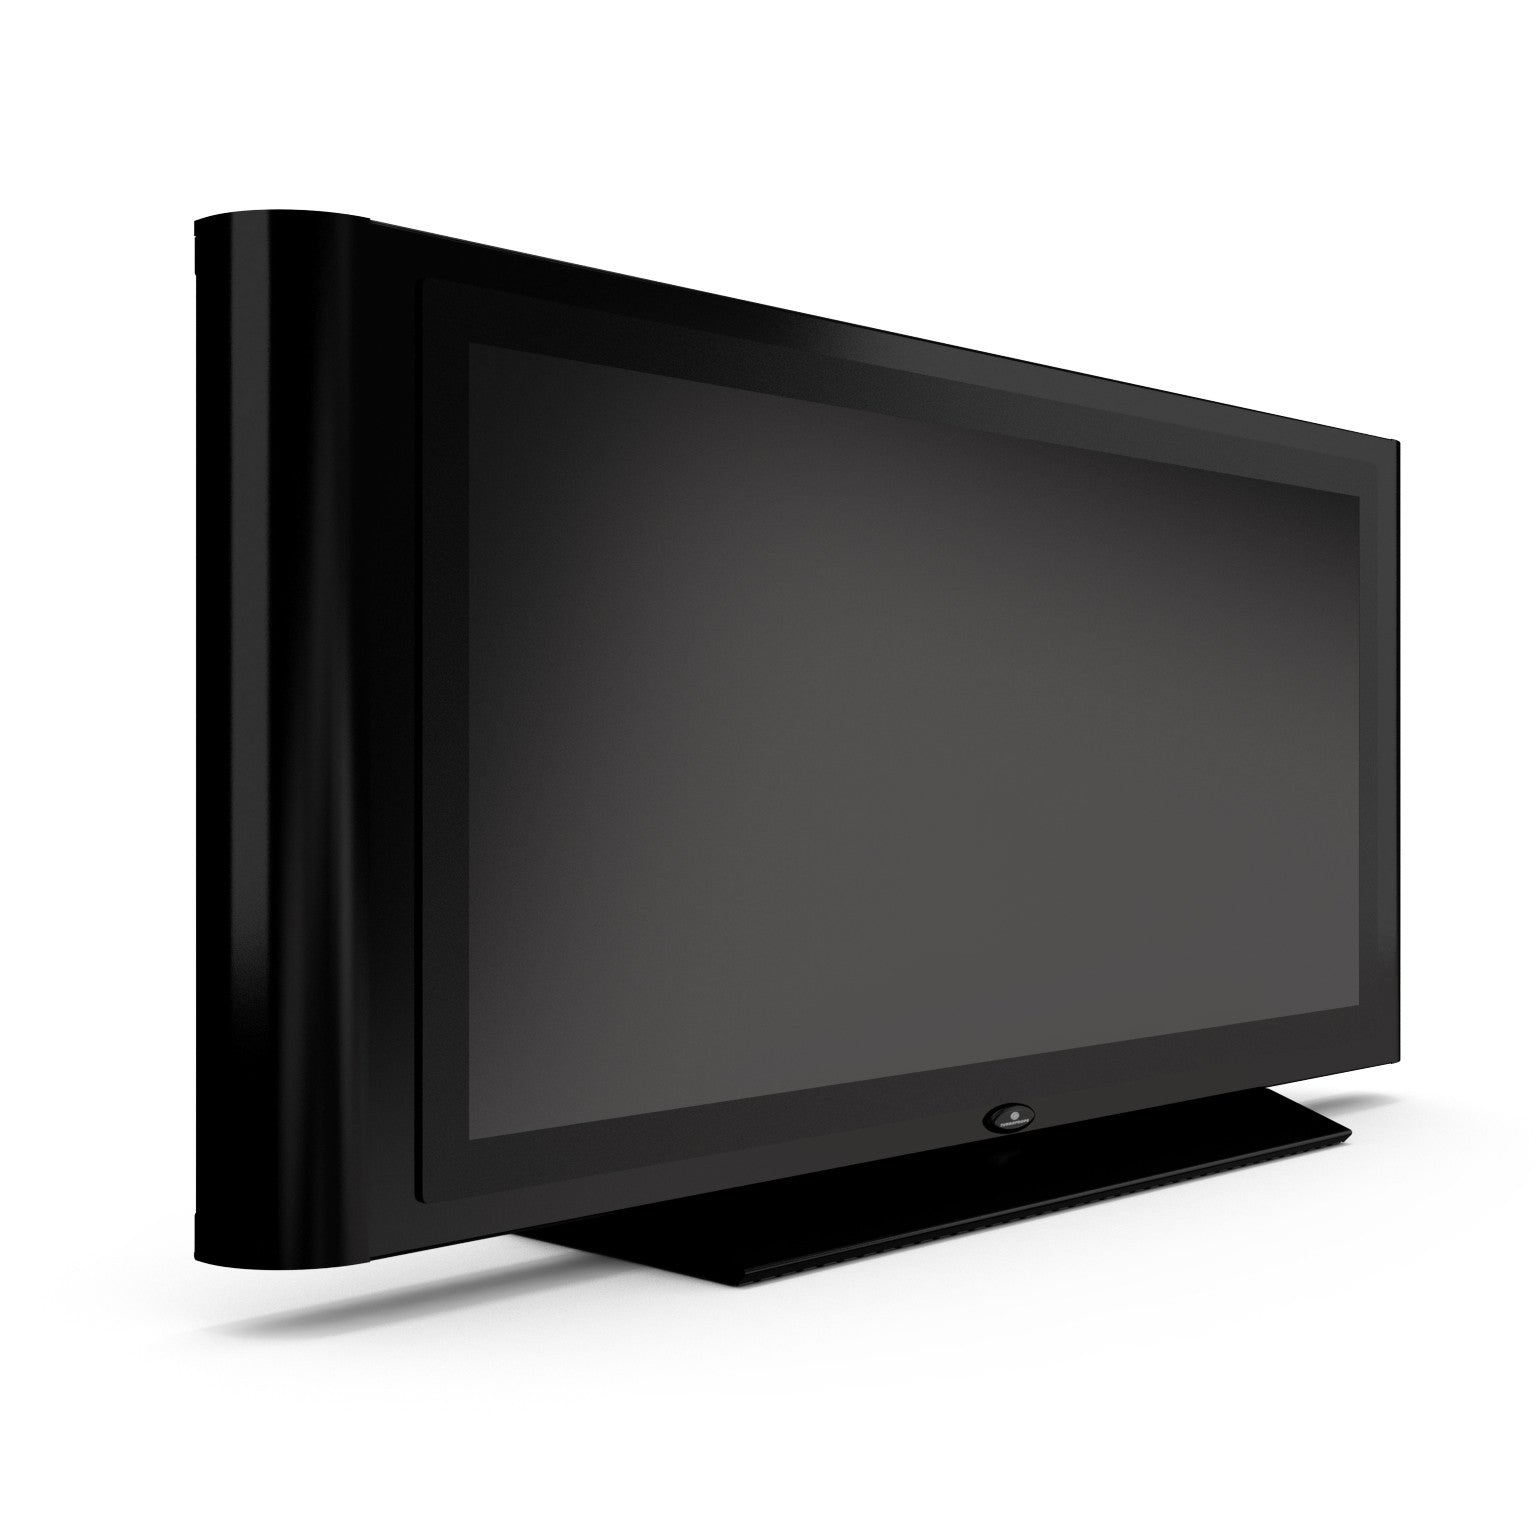 Turbo Elite 45 inch LCD TV prop with rounded sides in high gloss black